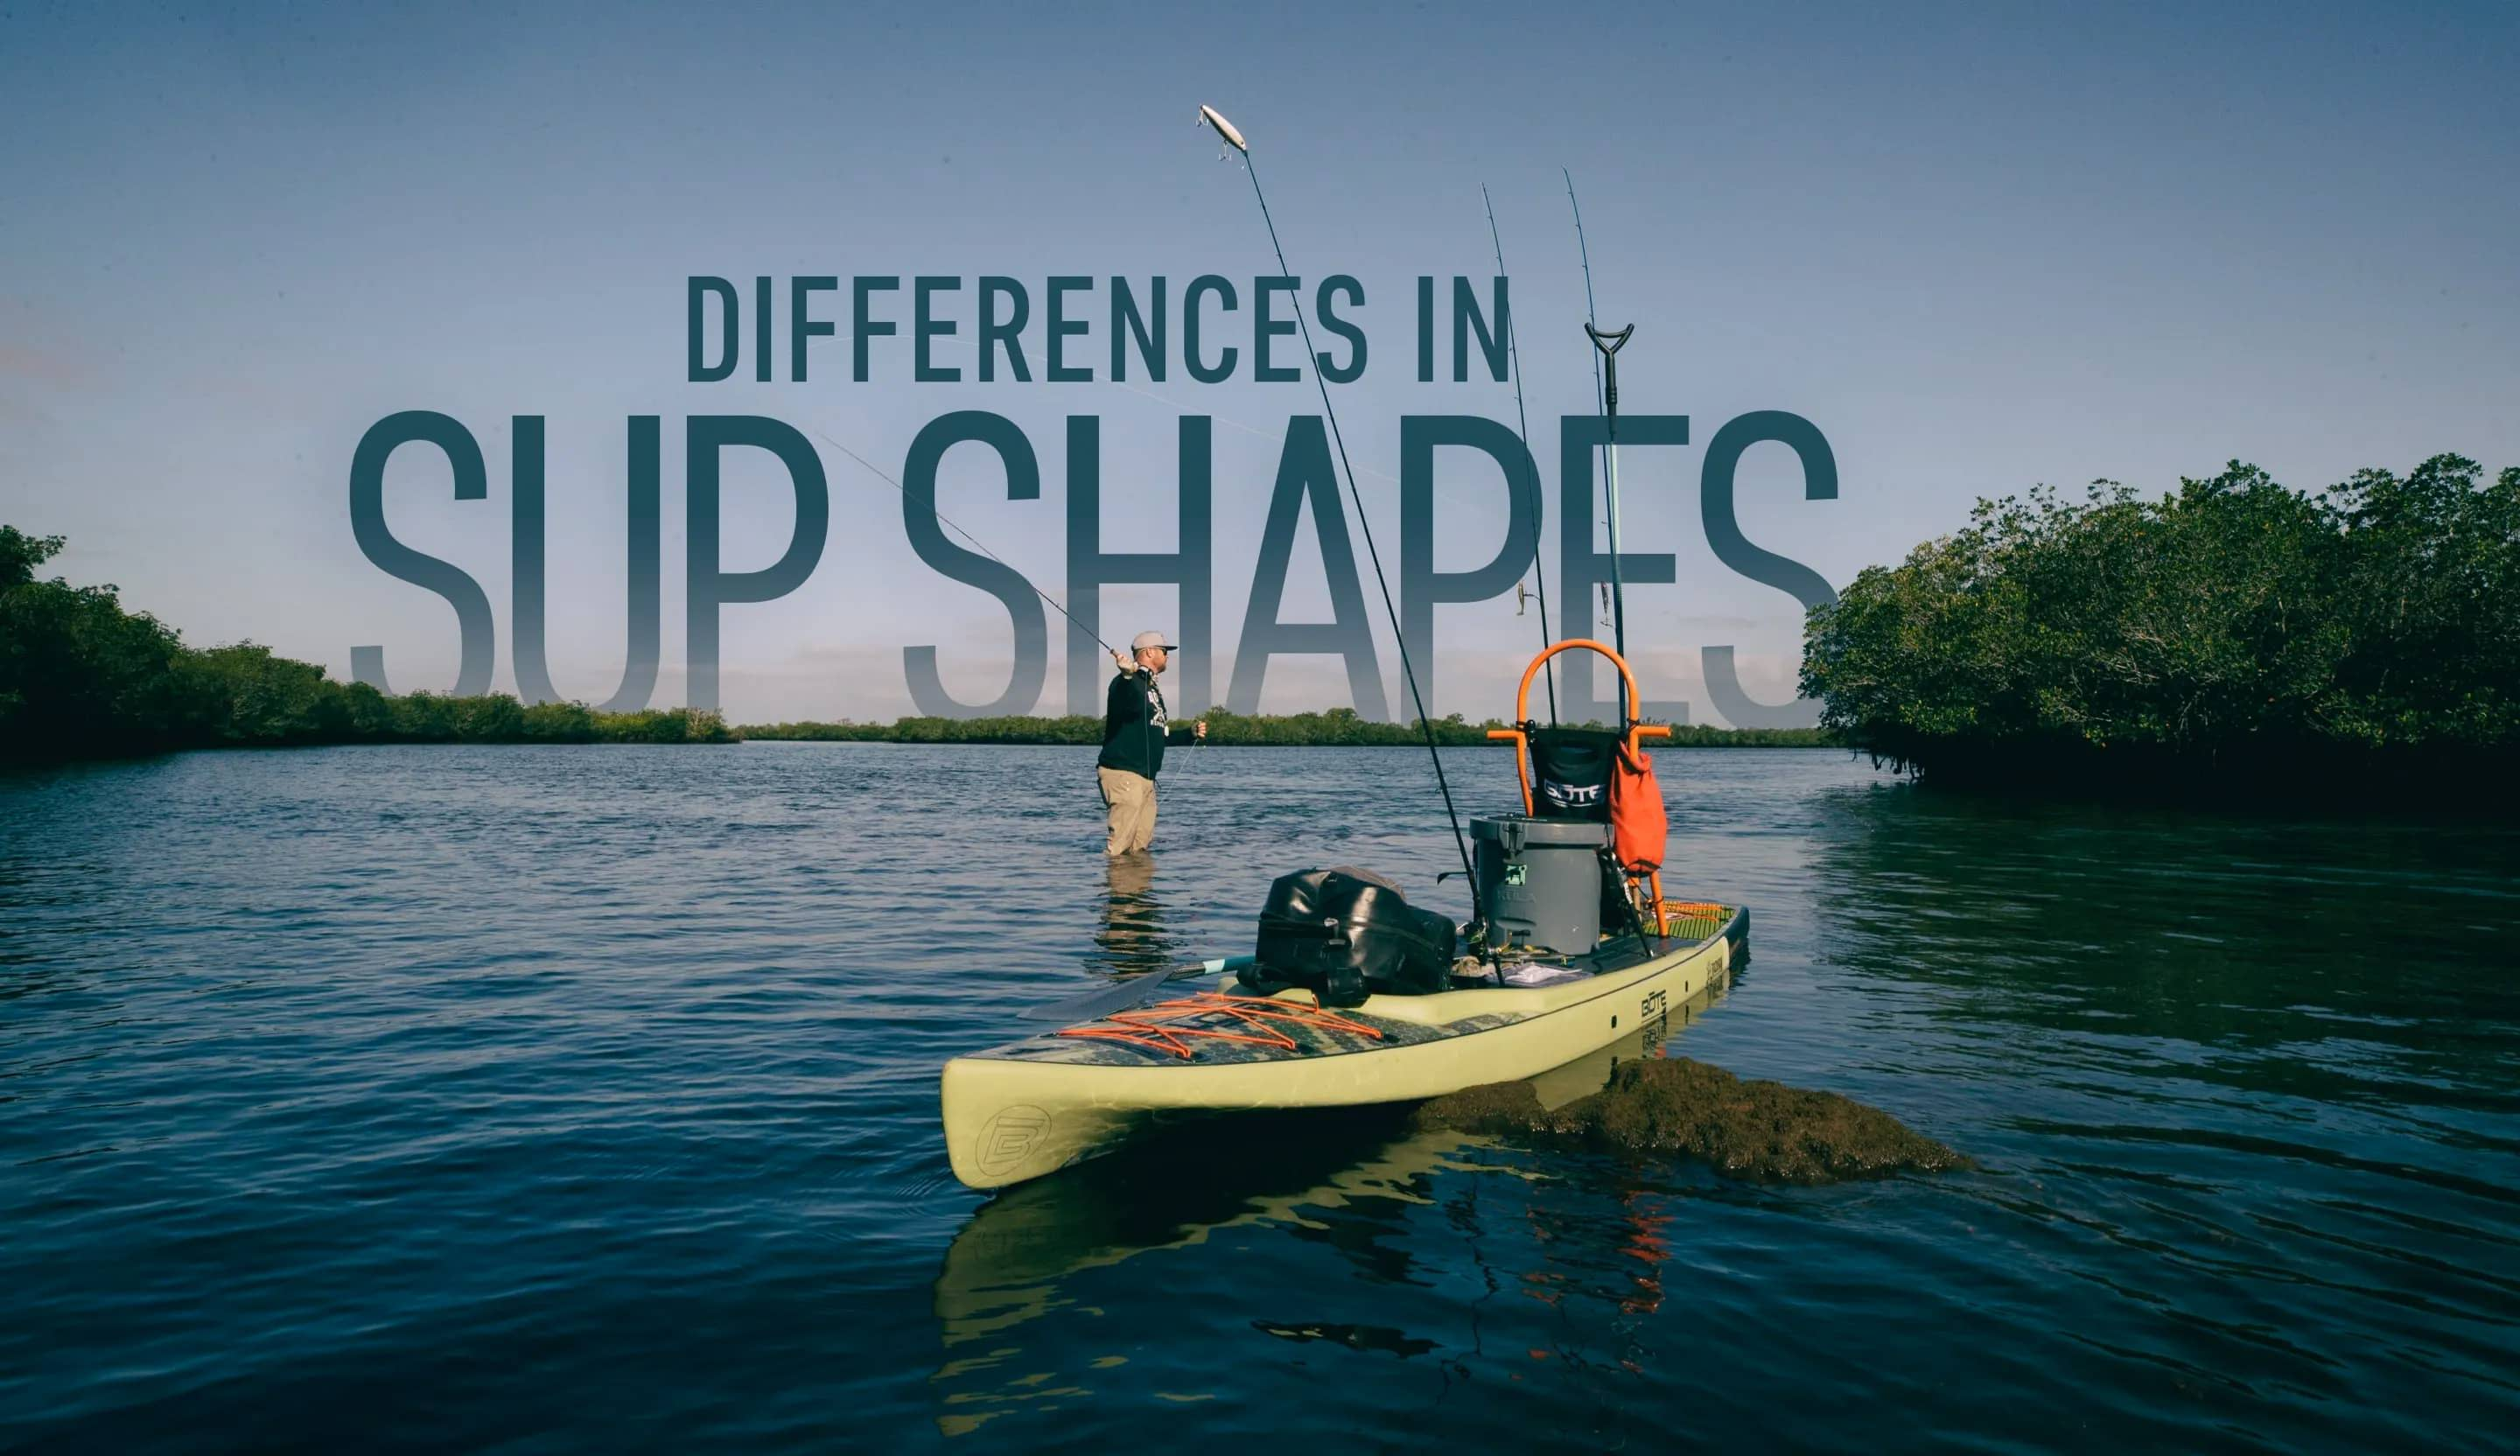 Differences in SUP Shapes Image